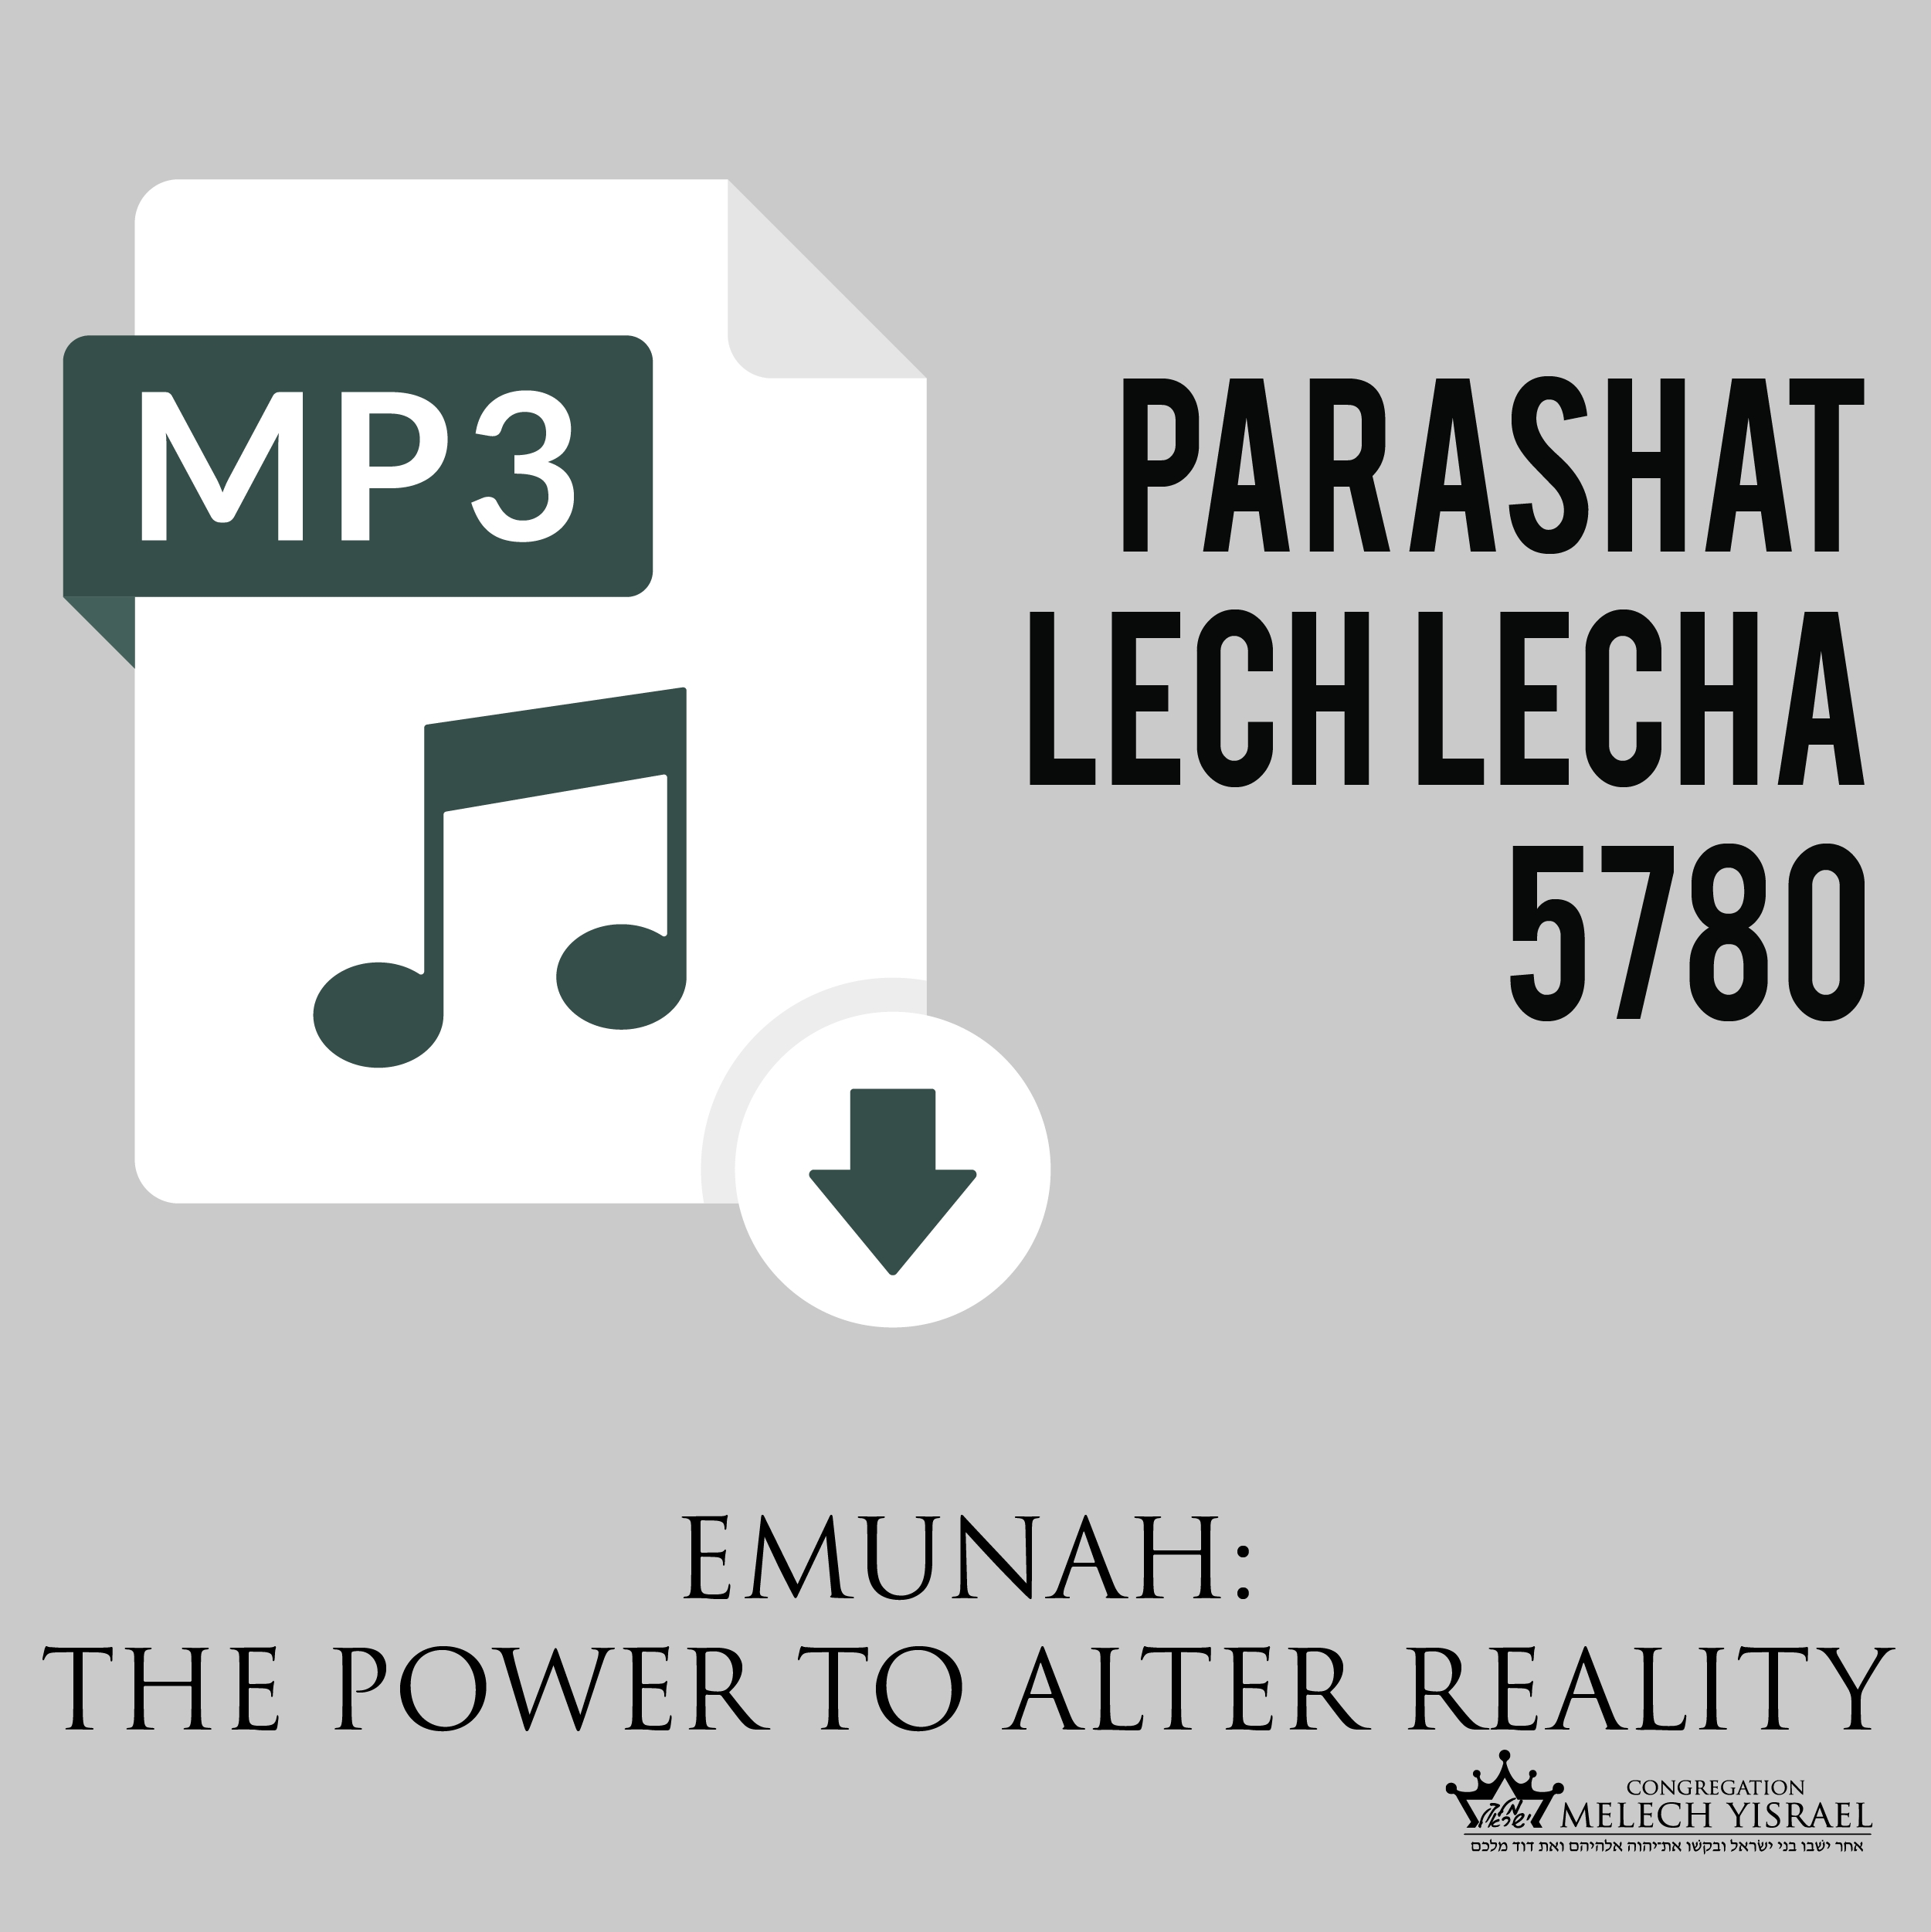 2019-11-09 Lech Lecha 5780 in This Week's Torah Portion 2019